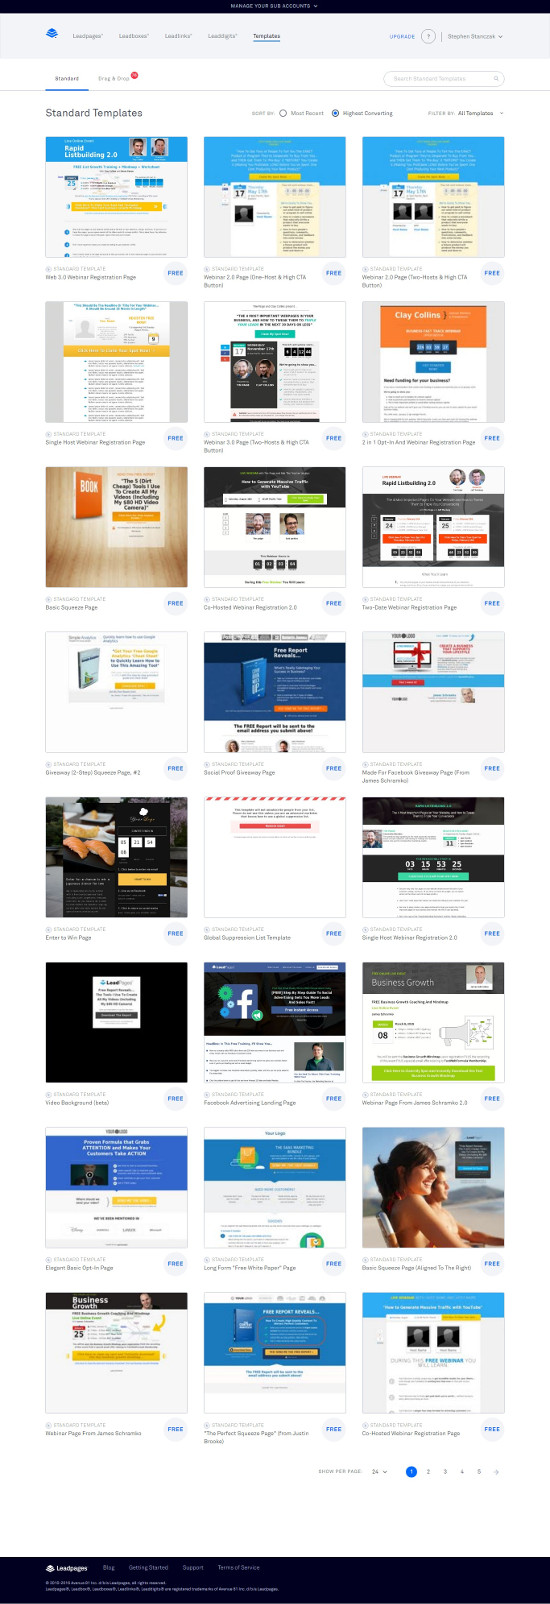 Slideshow In Leadpages